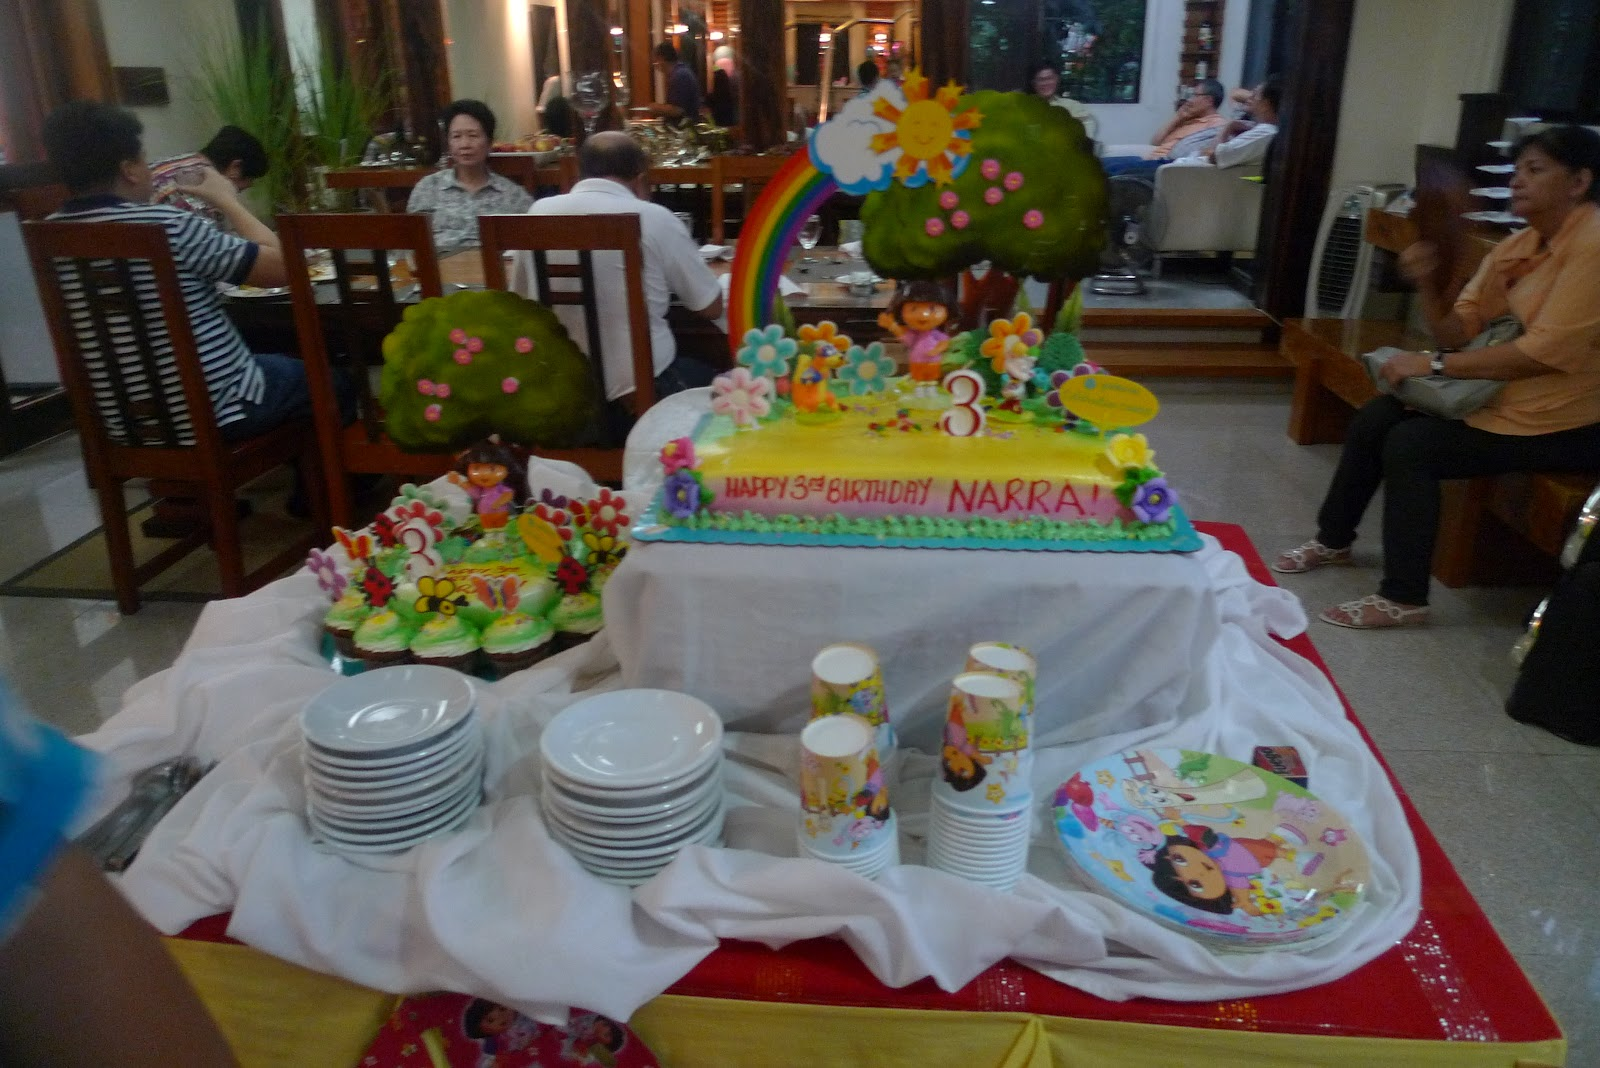 Narra S 2 Cakes From Goldilock Dora The Explorer Line